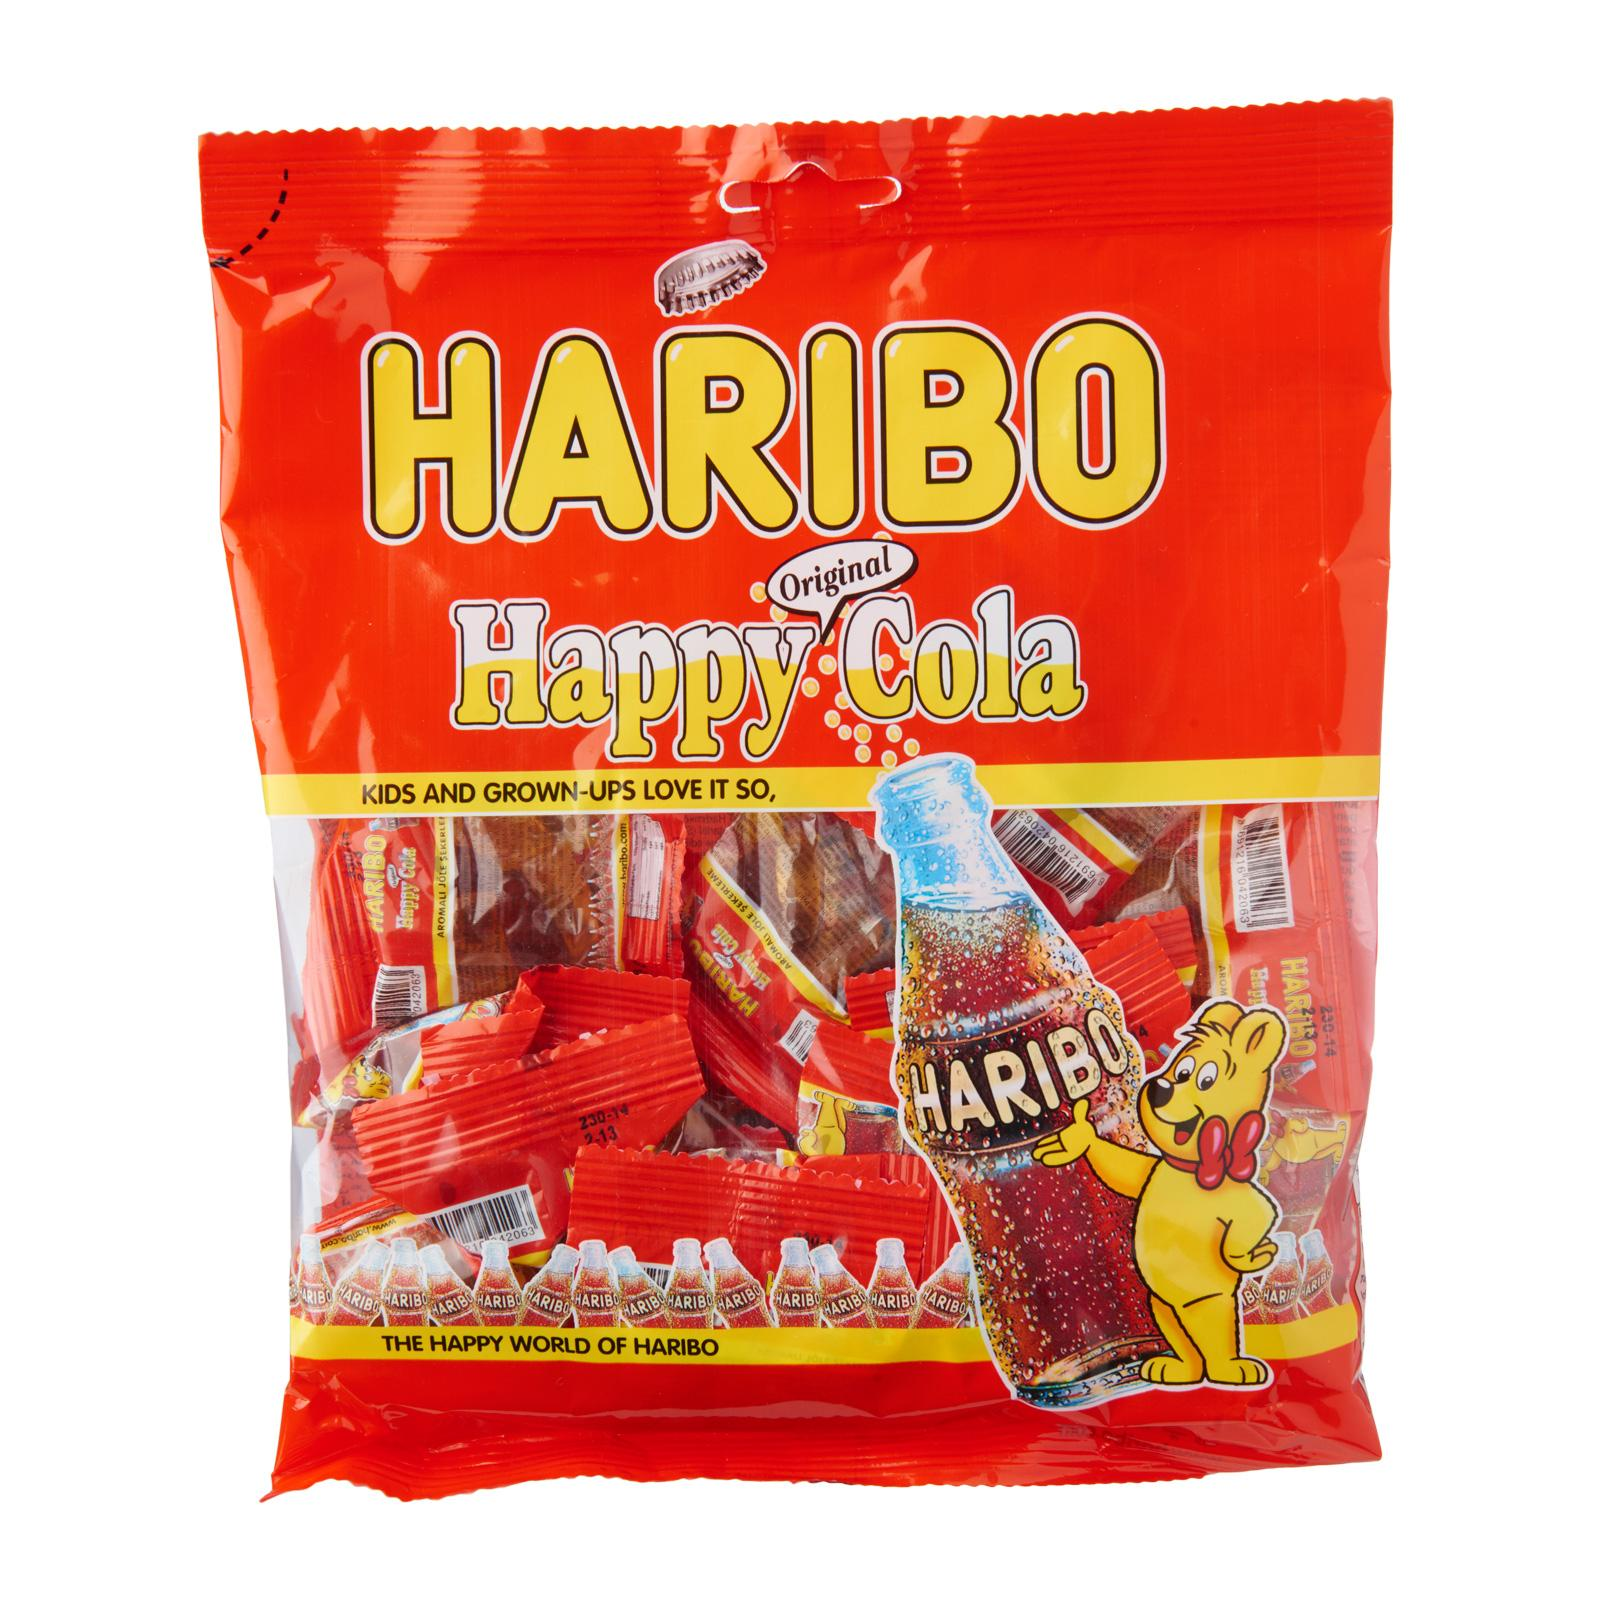 Haribo Happy Cola Gummy Candy Multipack